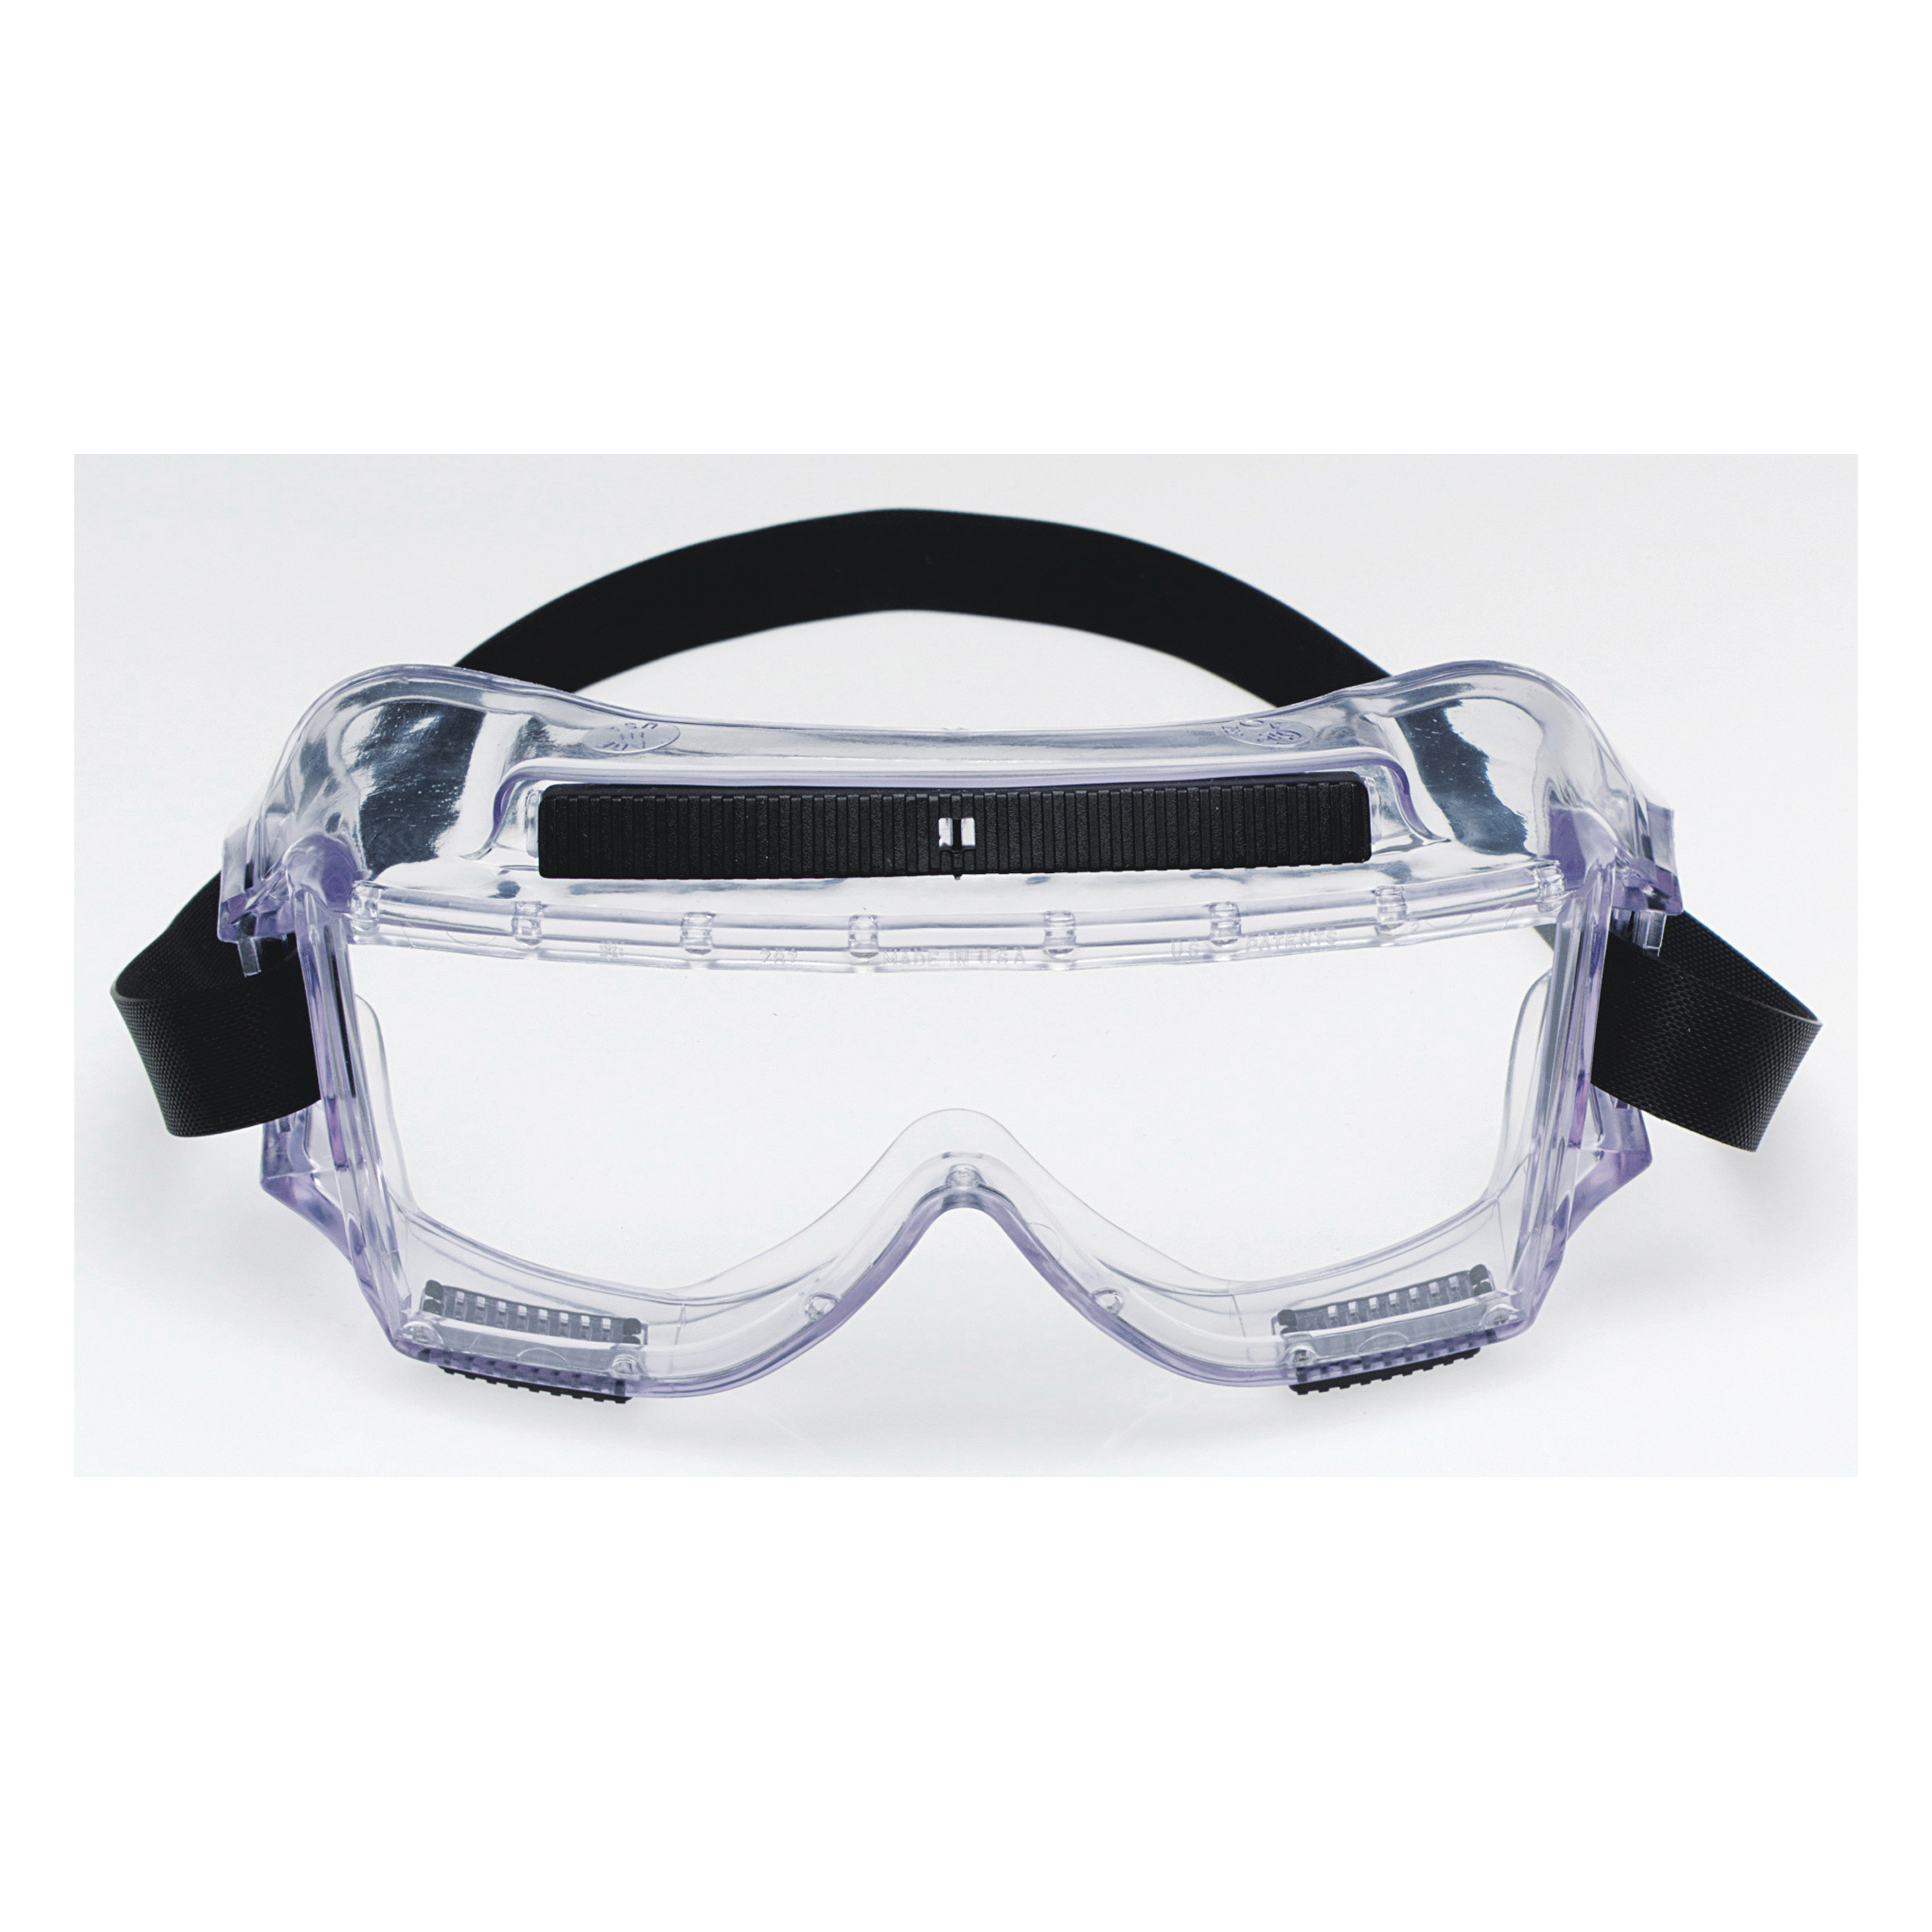 Goggle Splash Clr Antifog